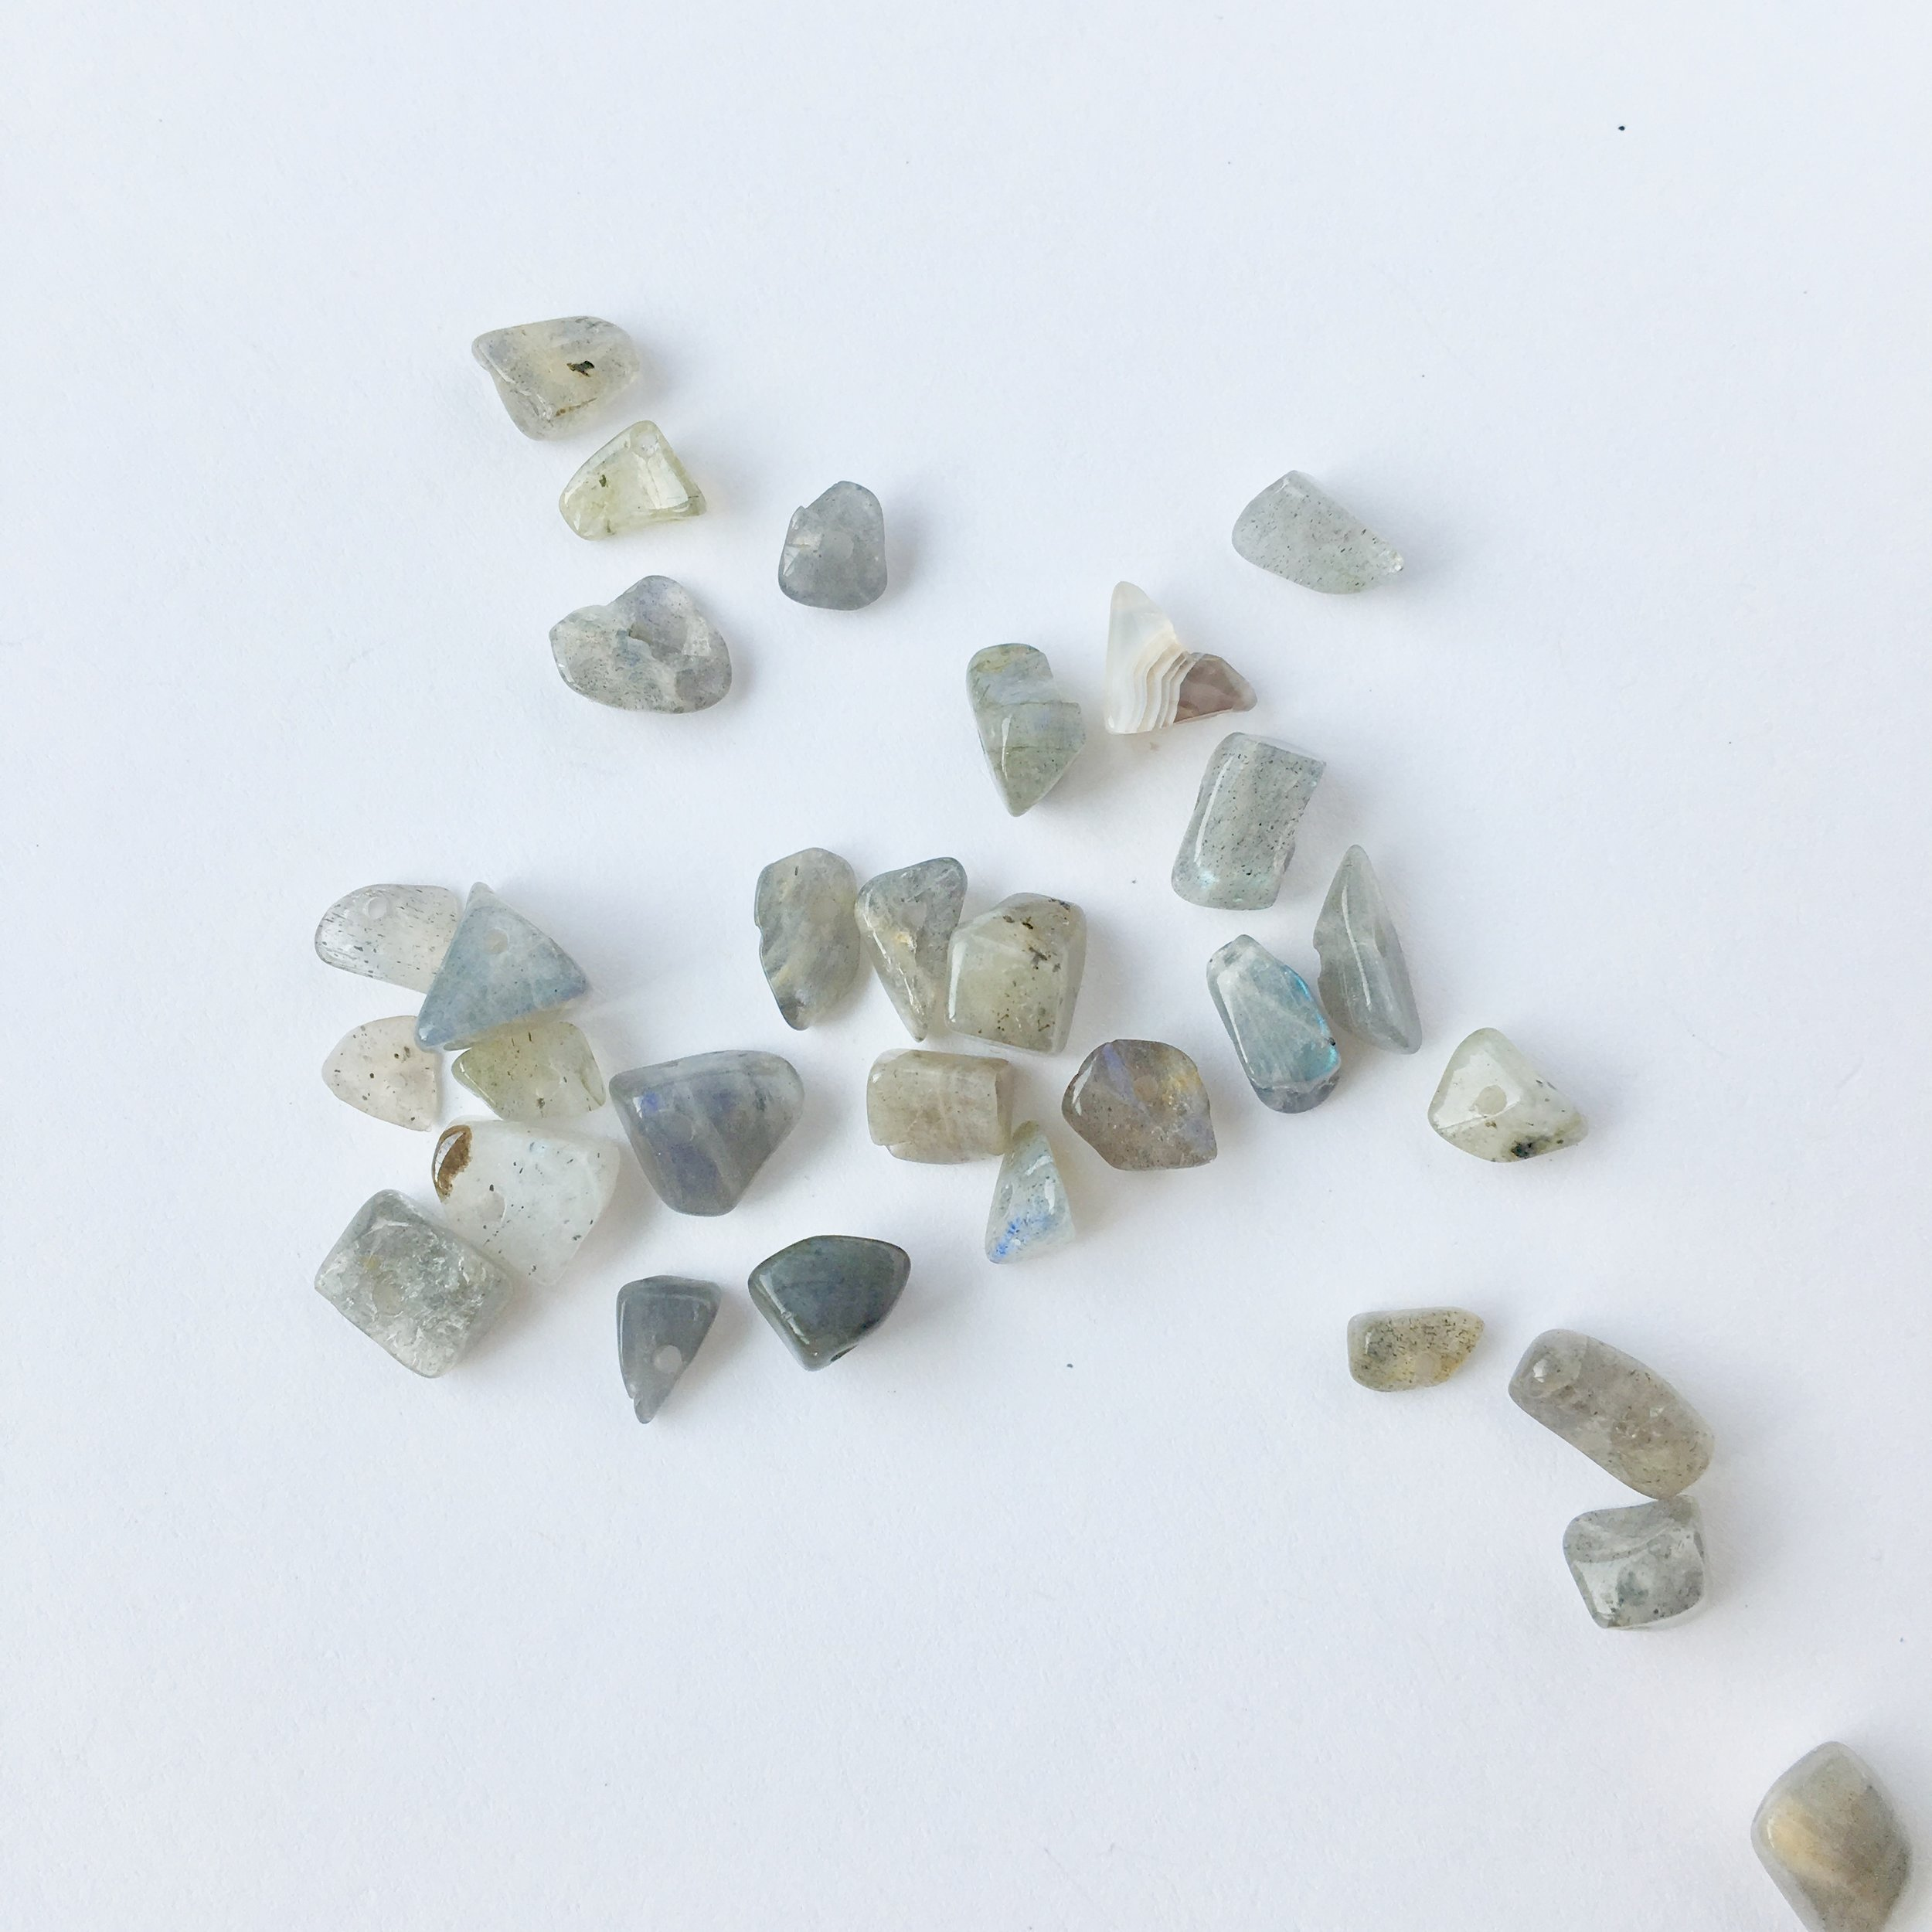 Labradorite: Use for increasing spiritual connection, motivation and awareness.